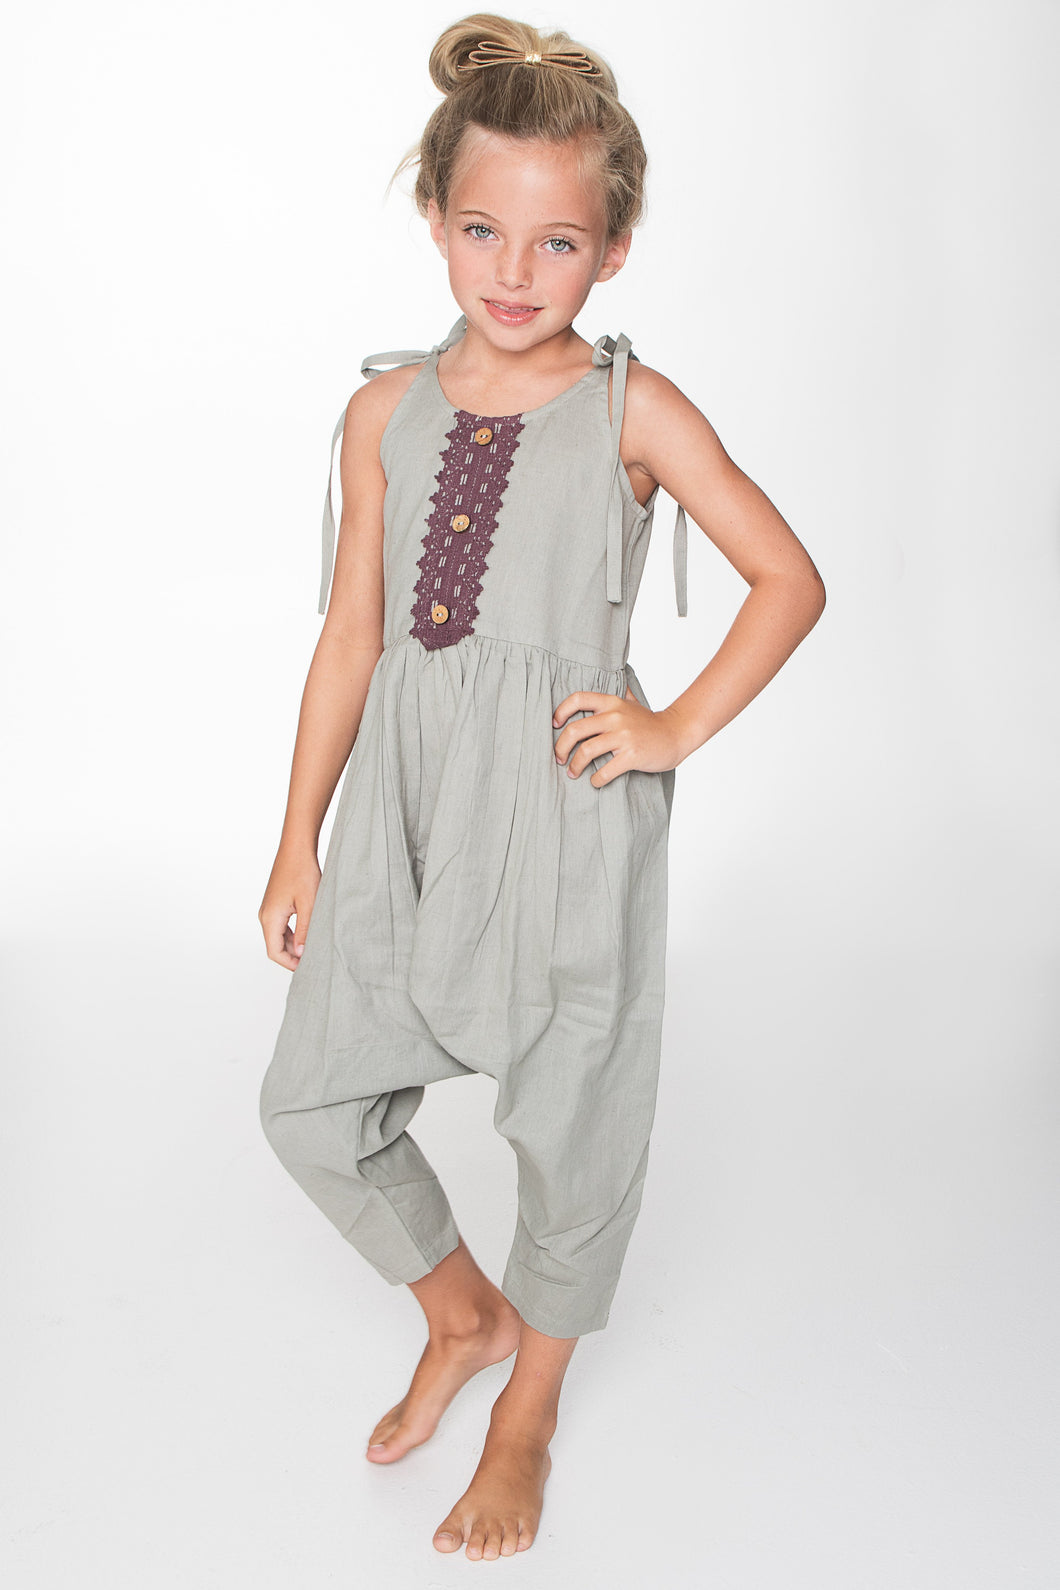 Grey Jumpsuit with Lace Detail - Kids Clothing, Jump Suit - Girls Dress, Yo Baby Online - Yo Baby